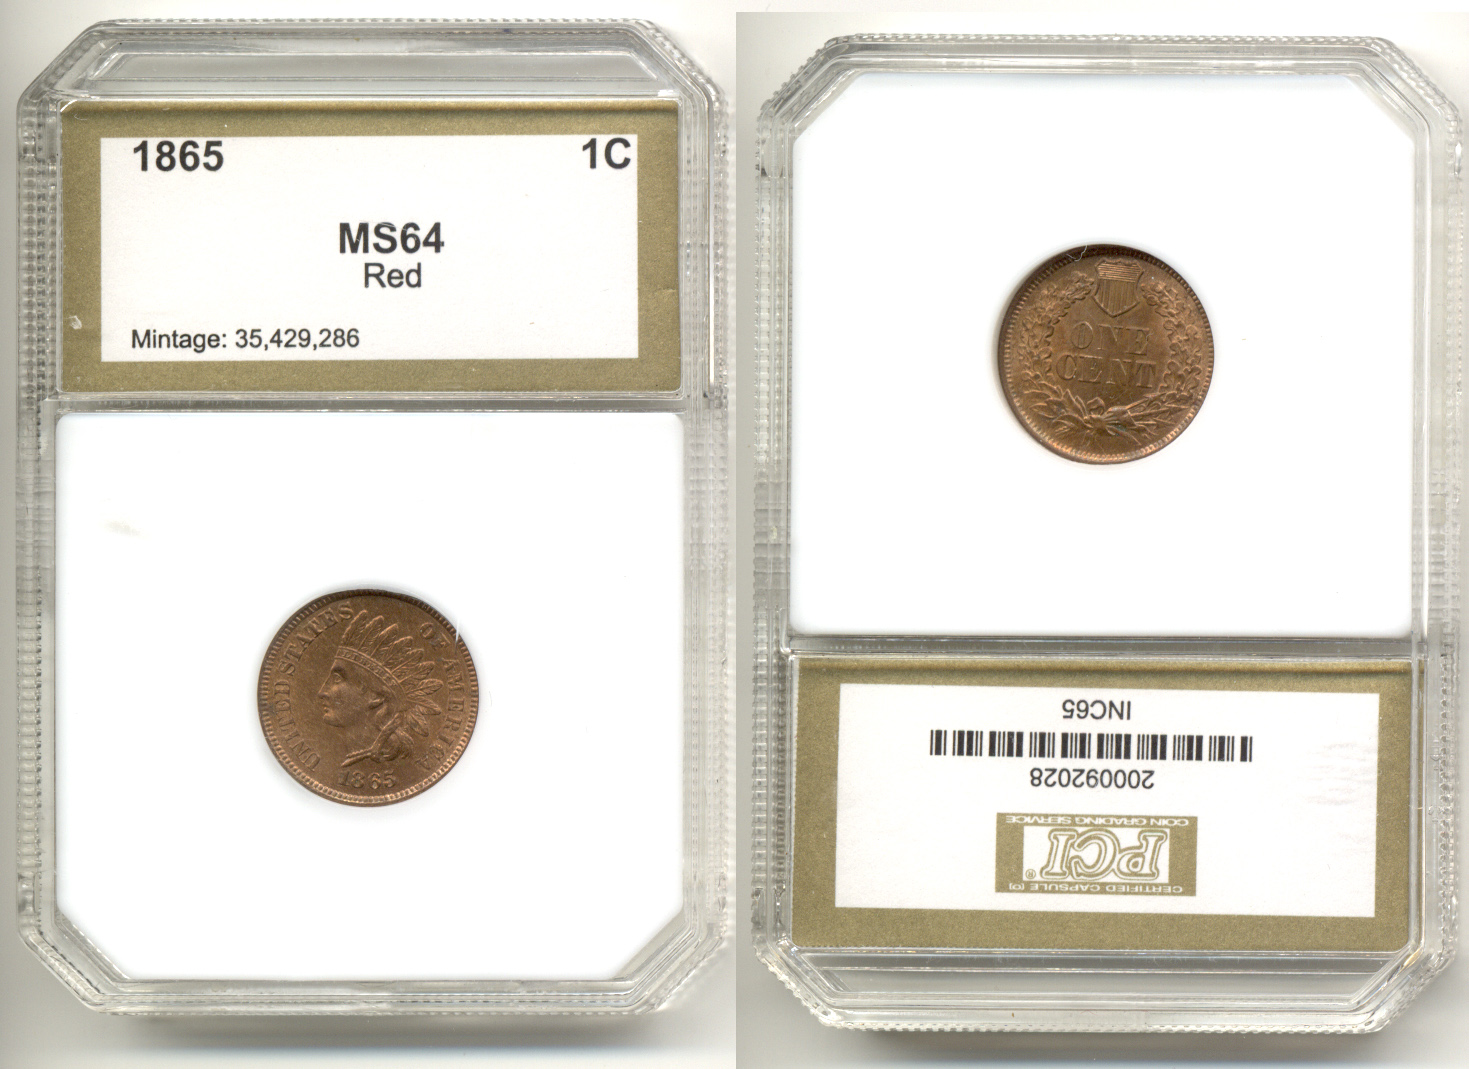 1865 Indian Head Cent PCI MS-64 Red